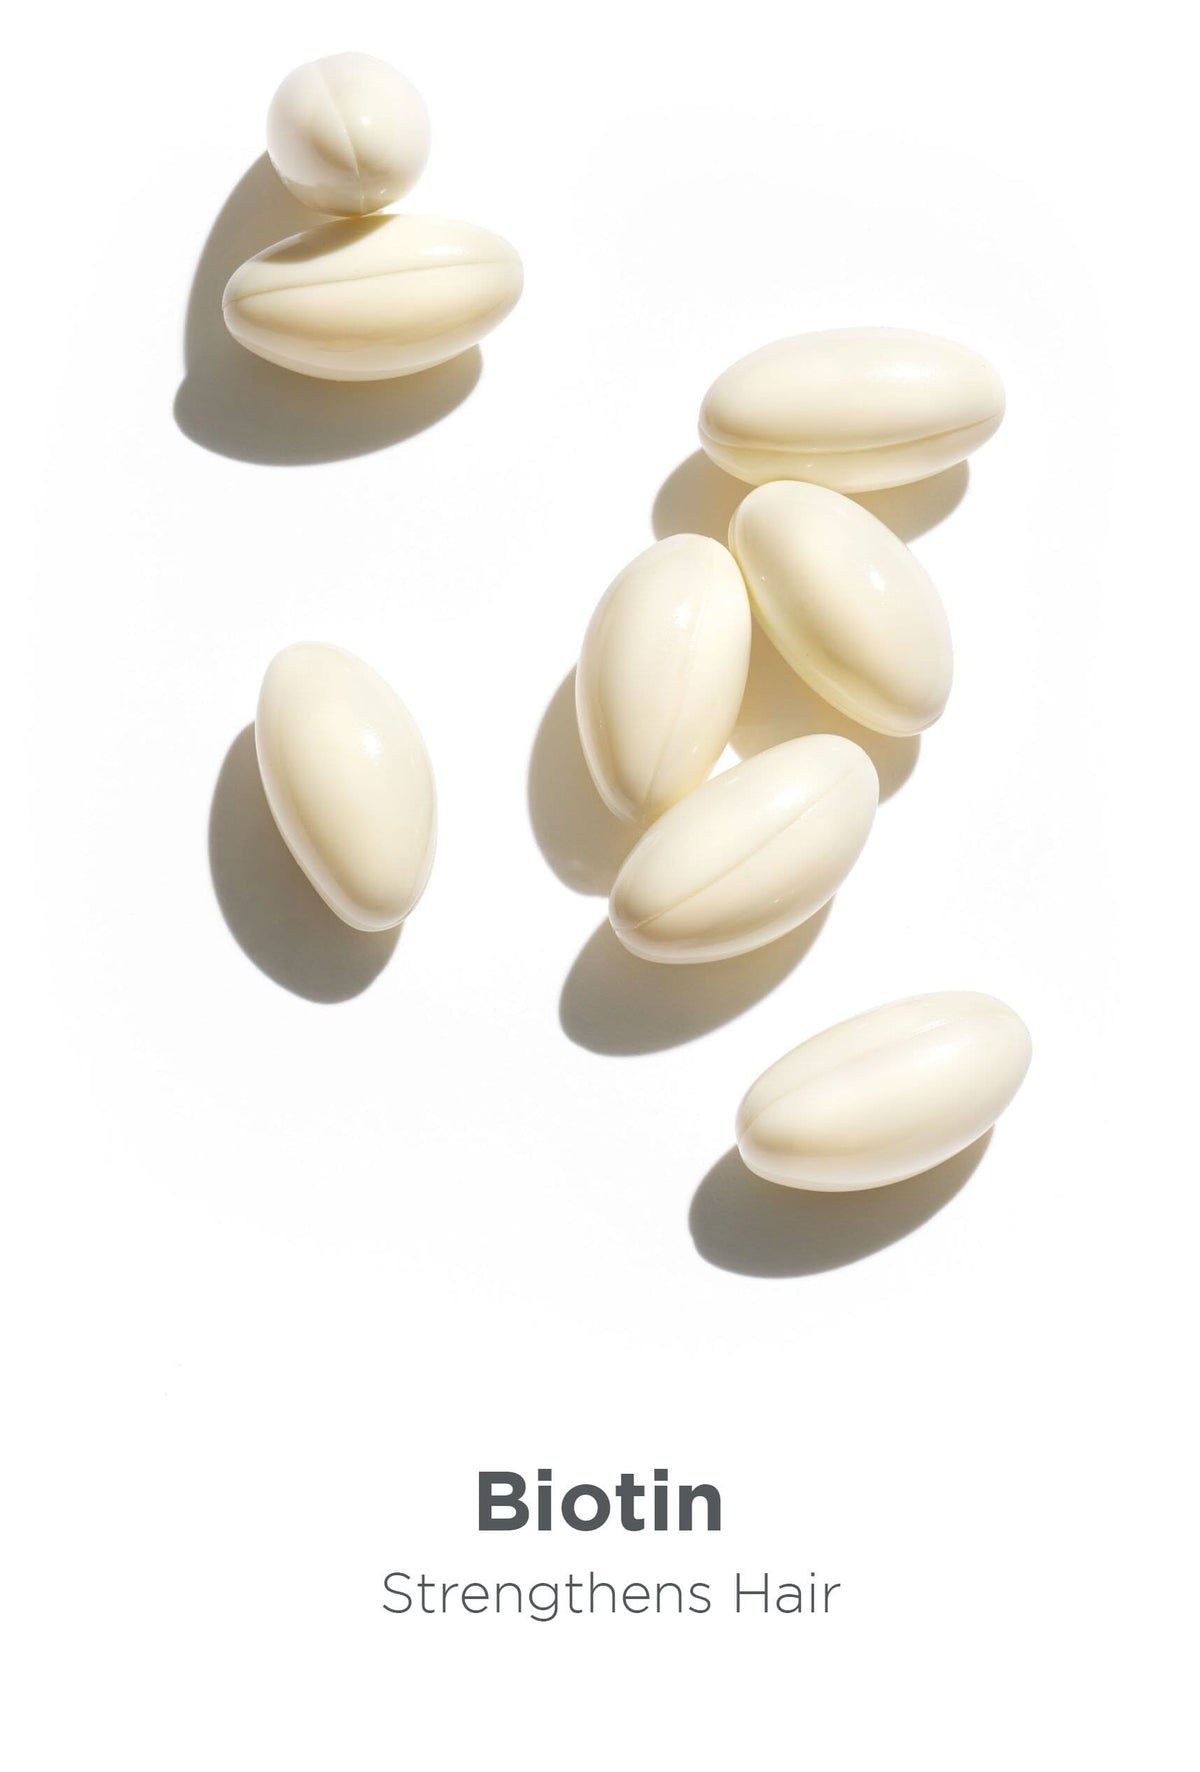 B. Well Vegan Omega 3, 6, 9 + Biotin Supplements For Healthy Hair